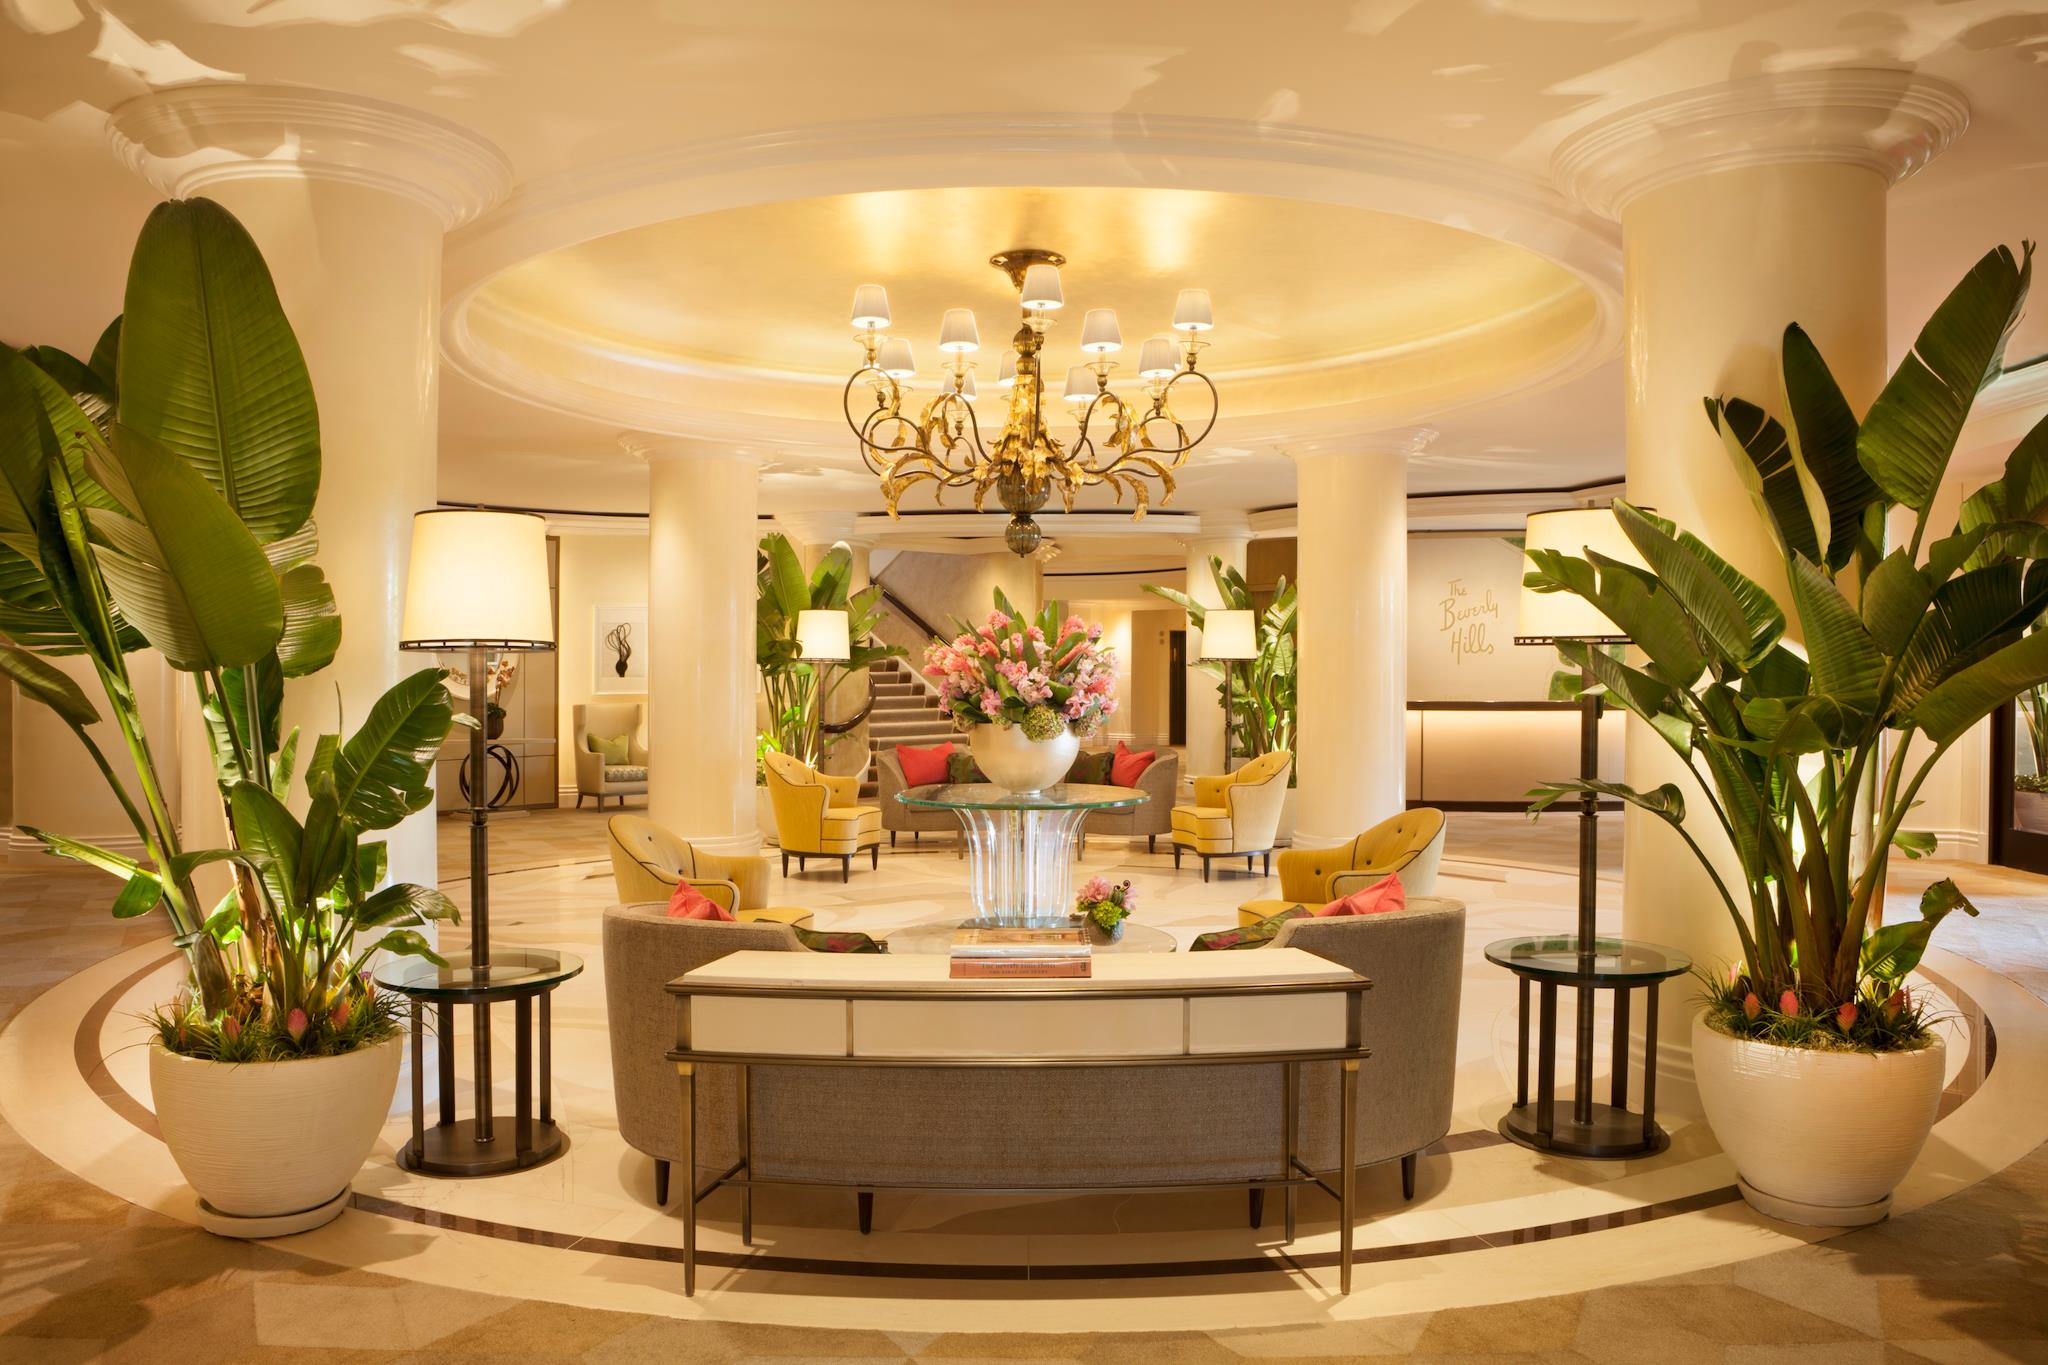 Tropical modern d cor at the beverly hills hotel for Hotel home decor